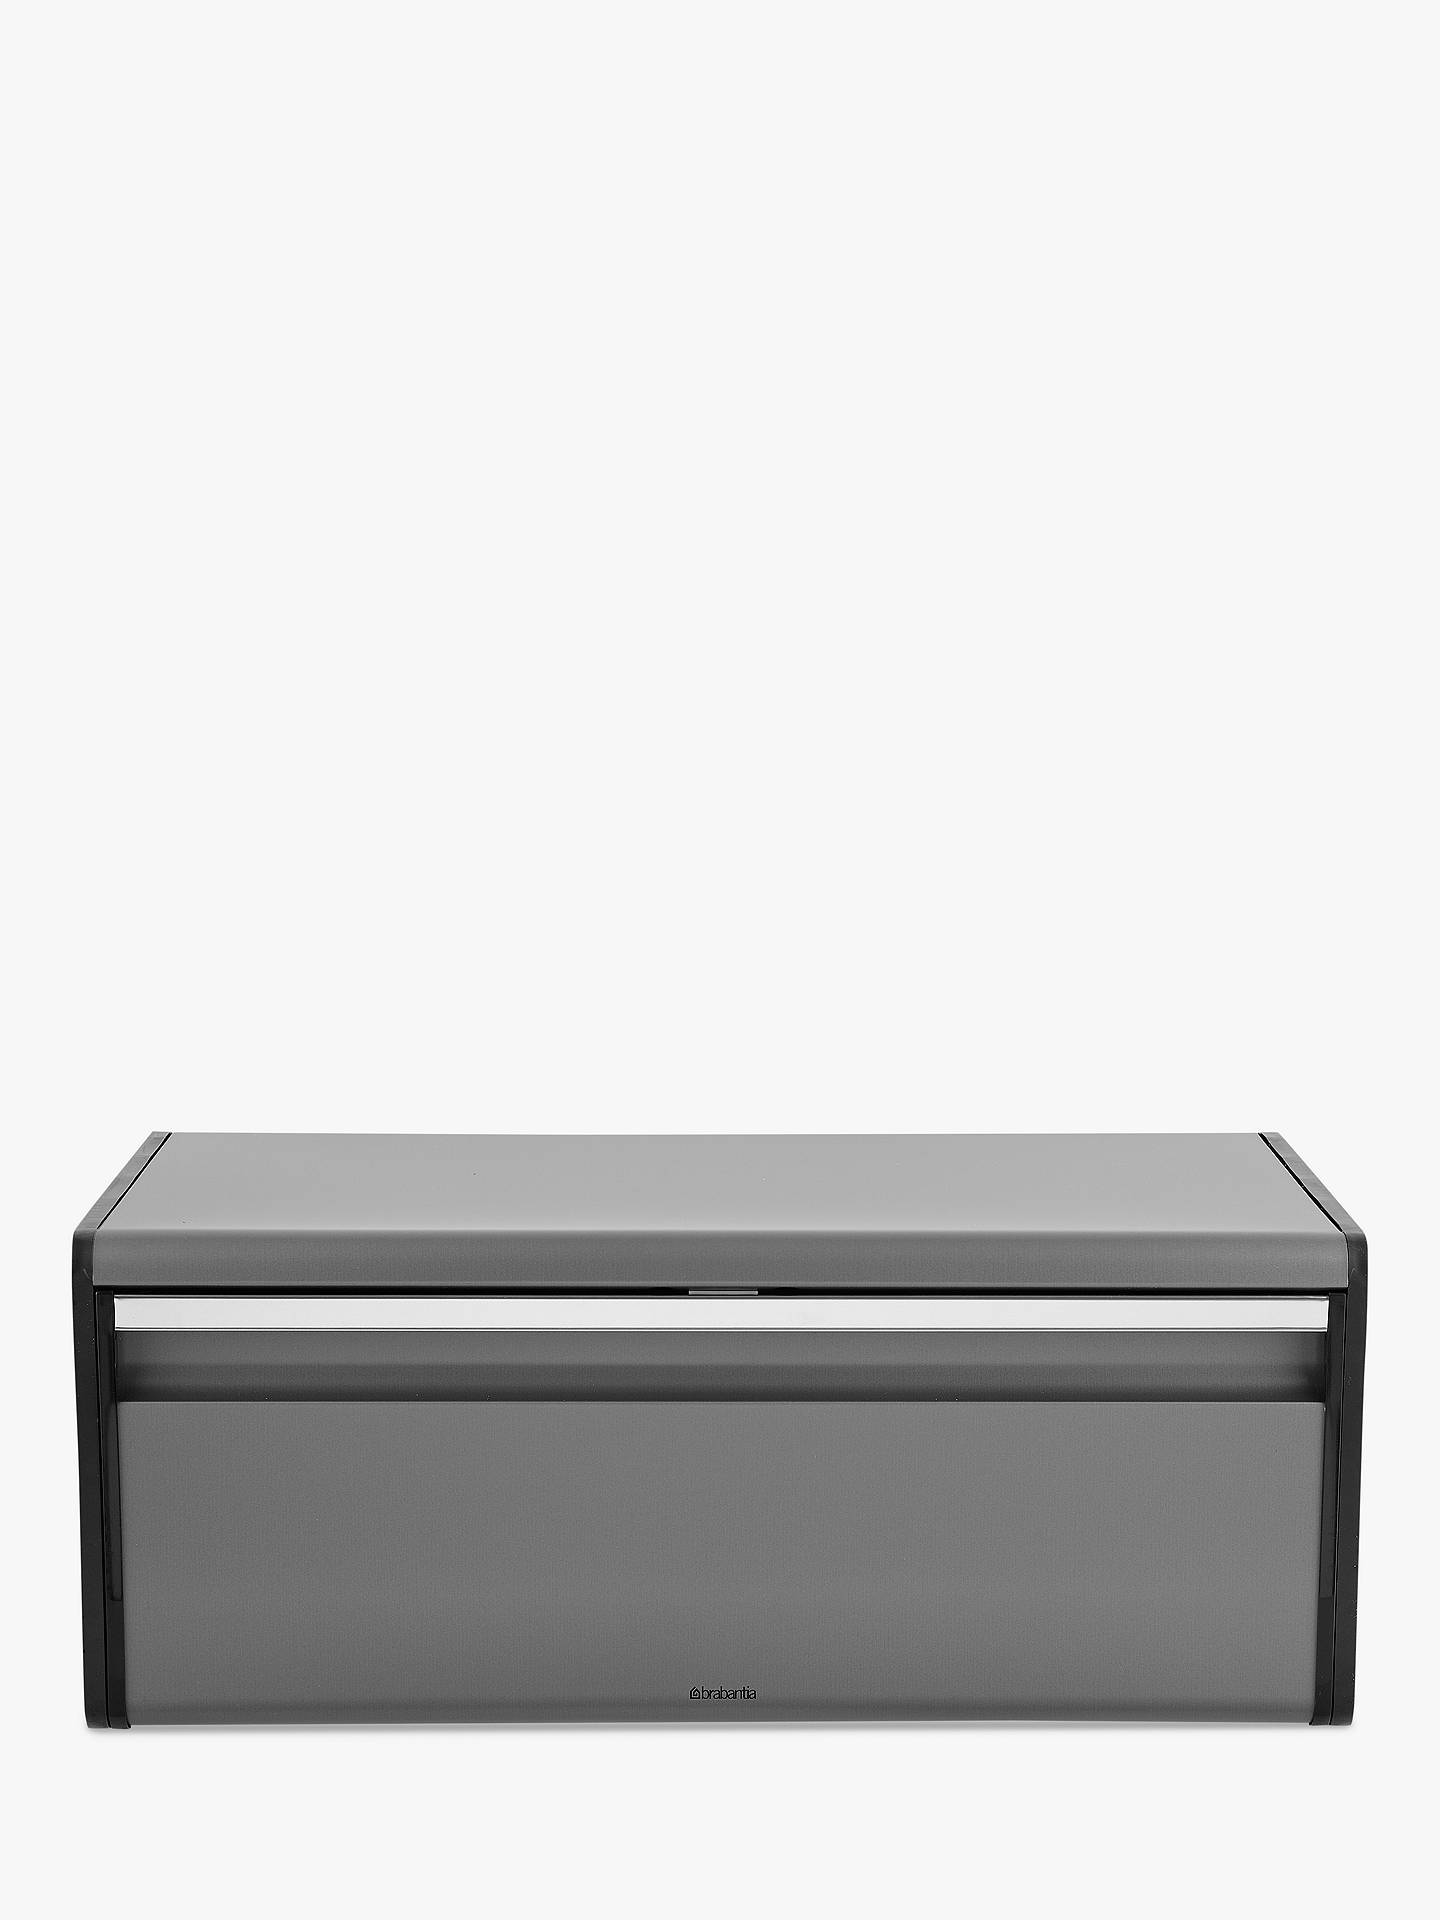 BuyBrabantia Fall Front Bread Bin, Platinum Online at johnlewis.com